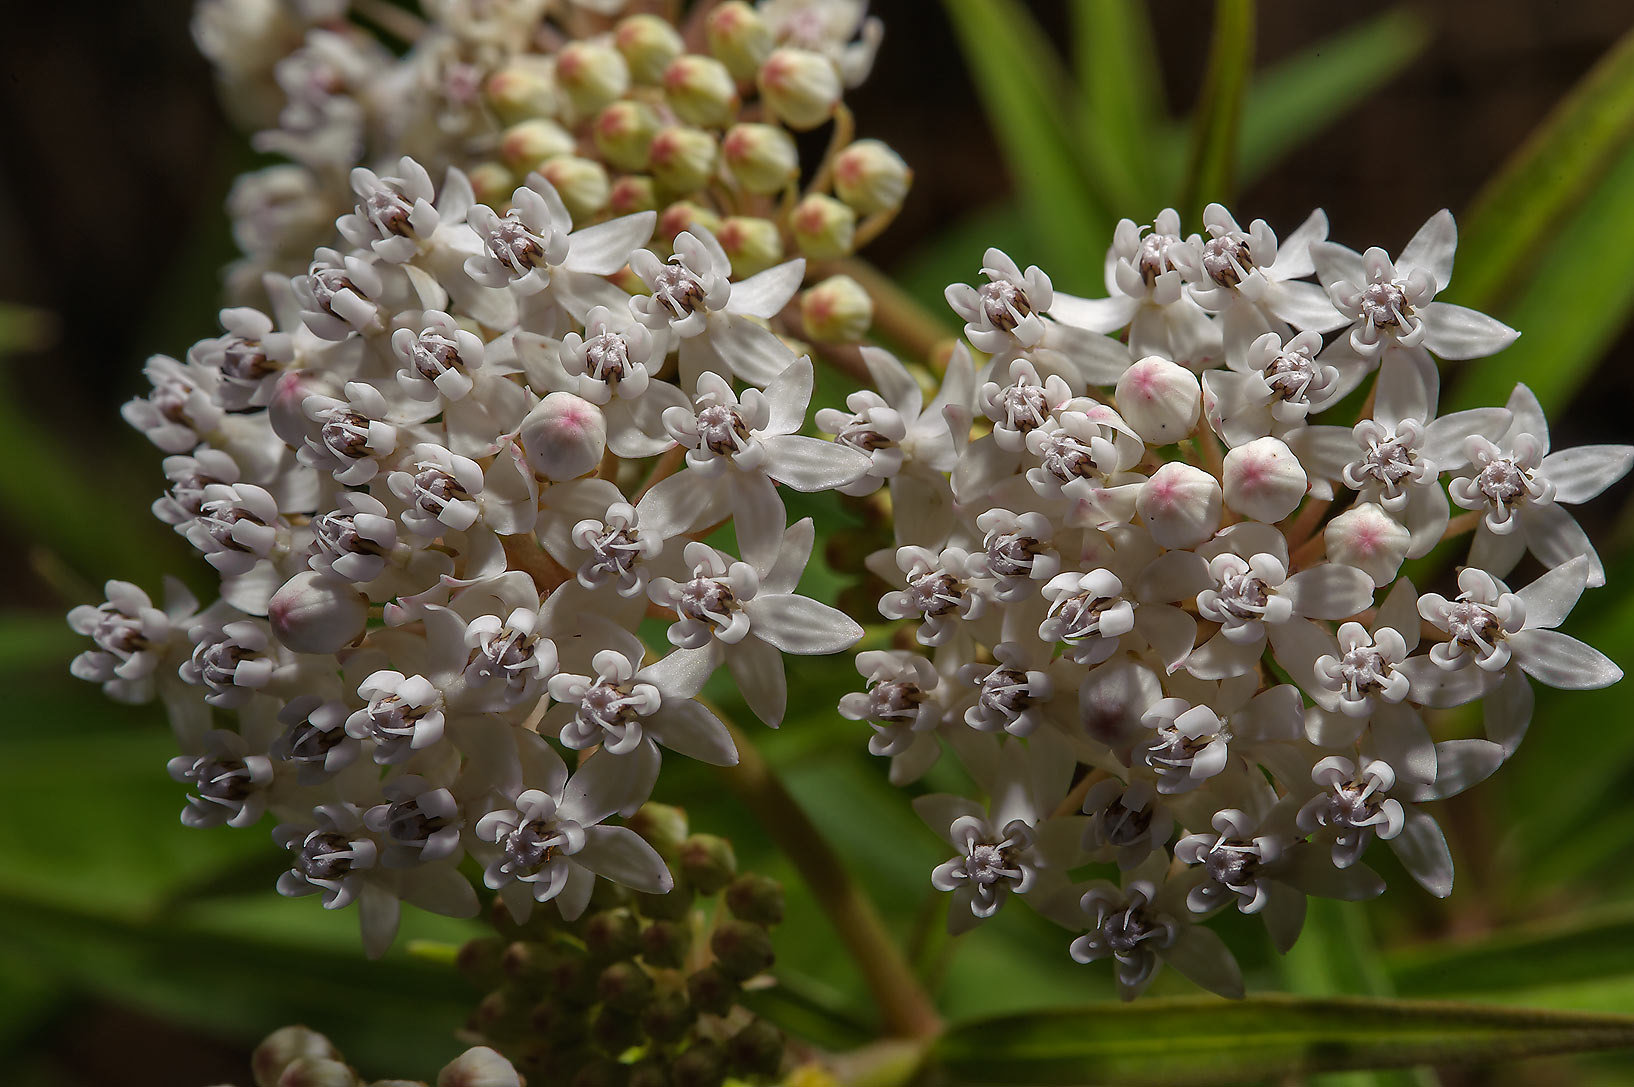 Shore milkweed (Asclepias perennis) in Mercer...Gardens. Humble (Houston area), Texas